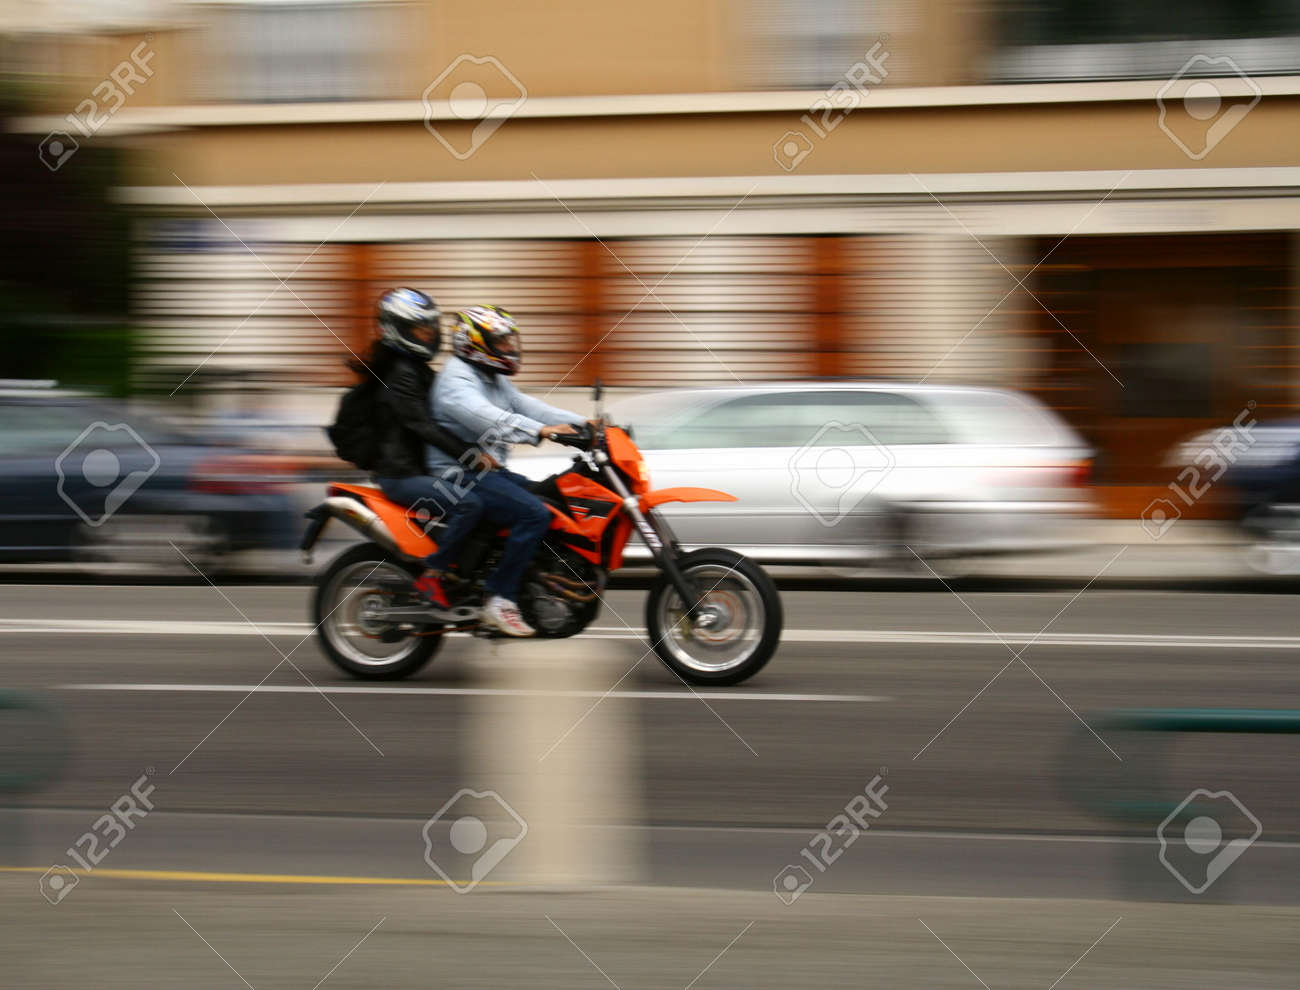 Panning shot of a moving vehicle on the road. Stock Photo - 702342